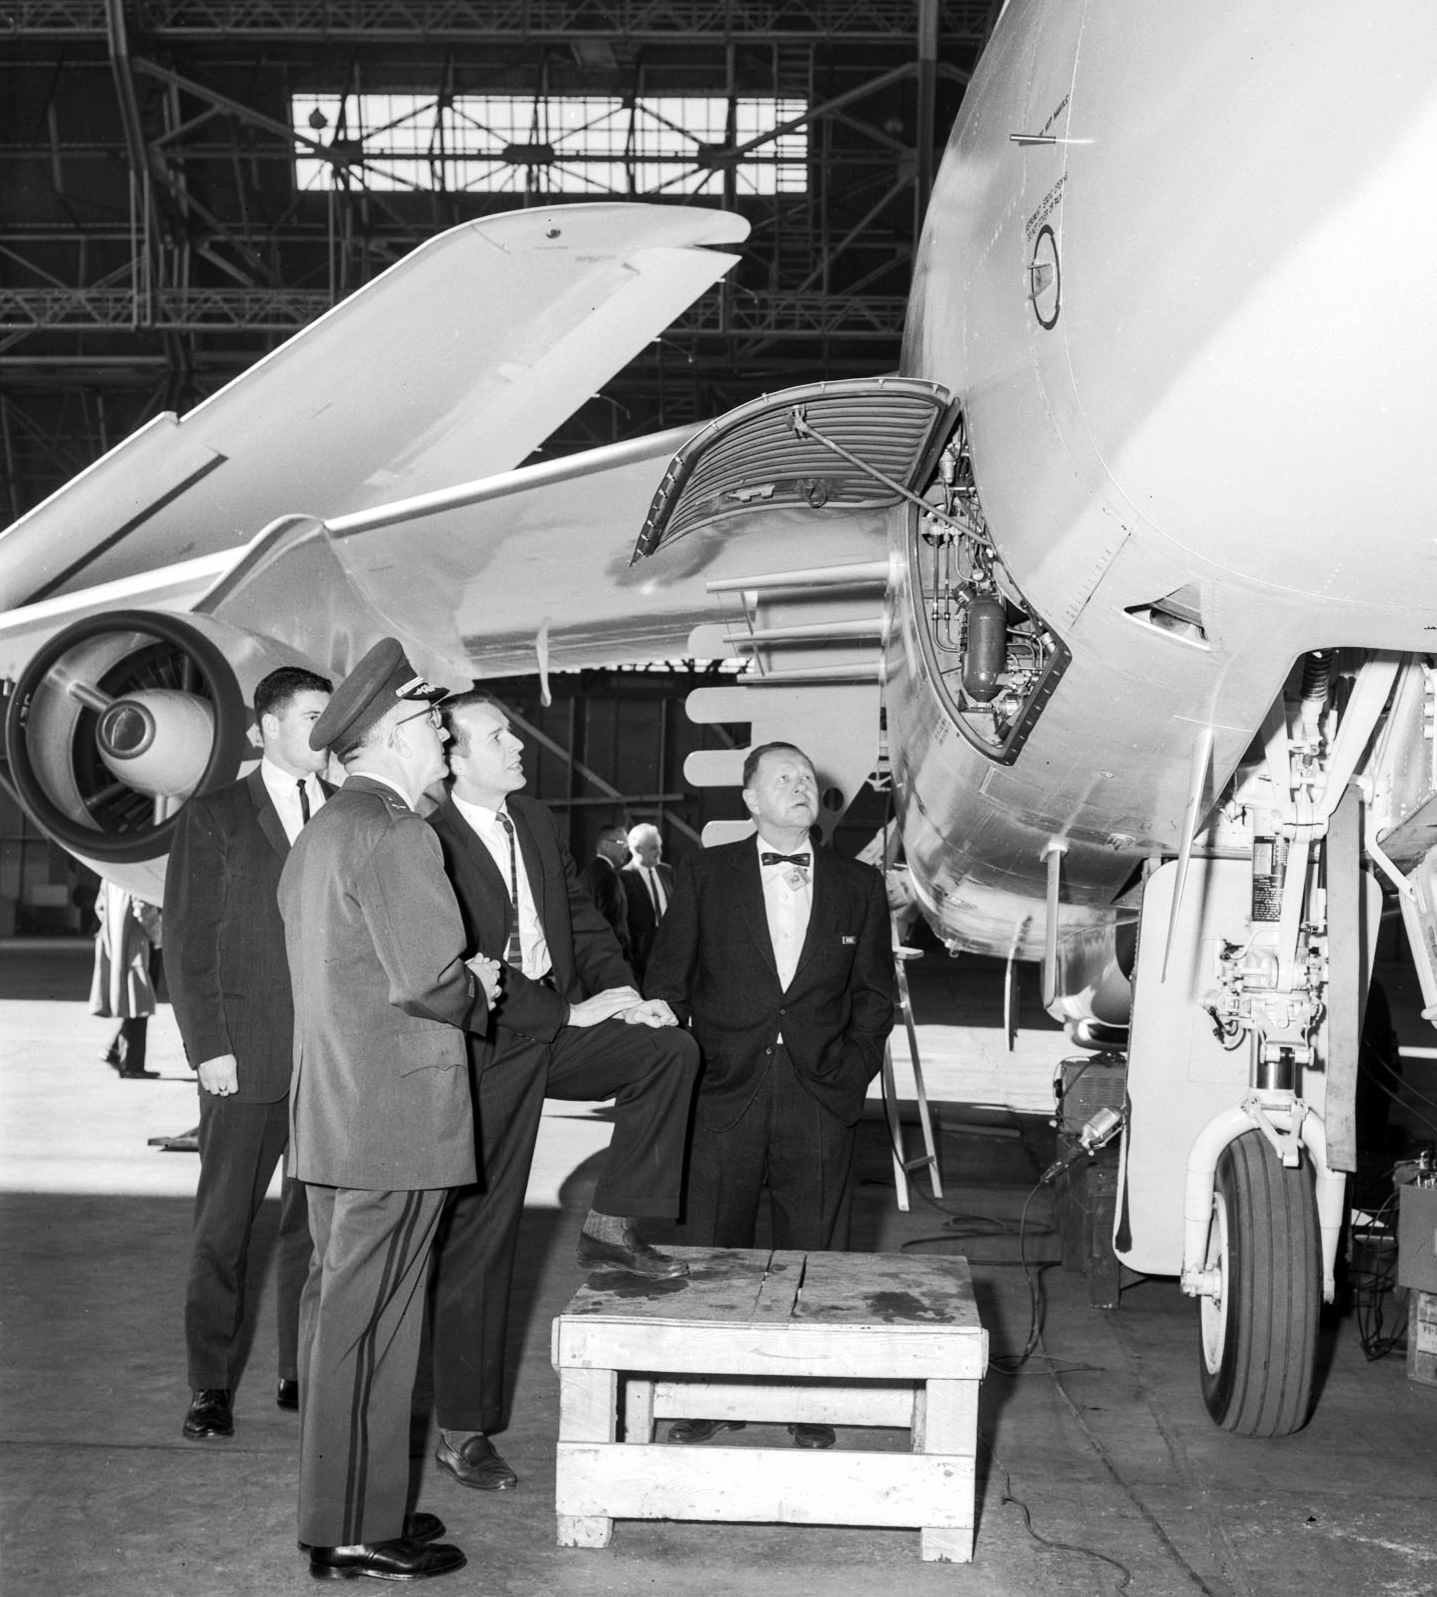 Perry and his Sylvania collegues join General J.J. David at Moffett Field to inspect the airborne telemetry intercept system deployed in Turkey and Pakistan, 1962.